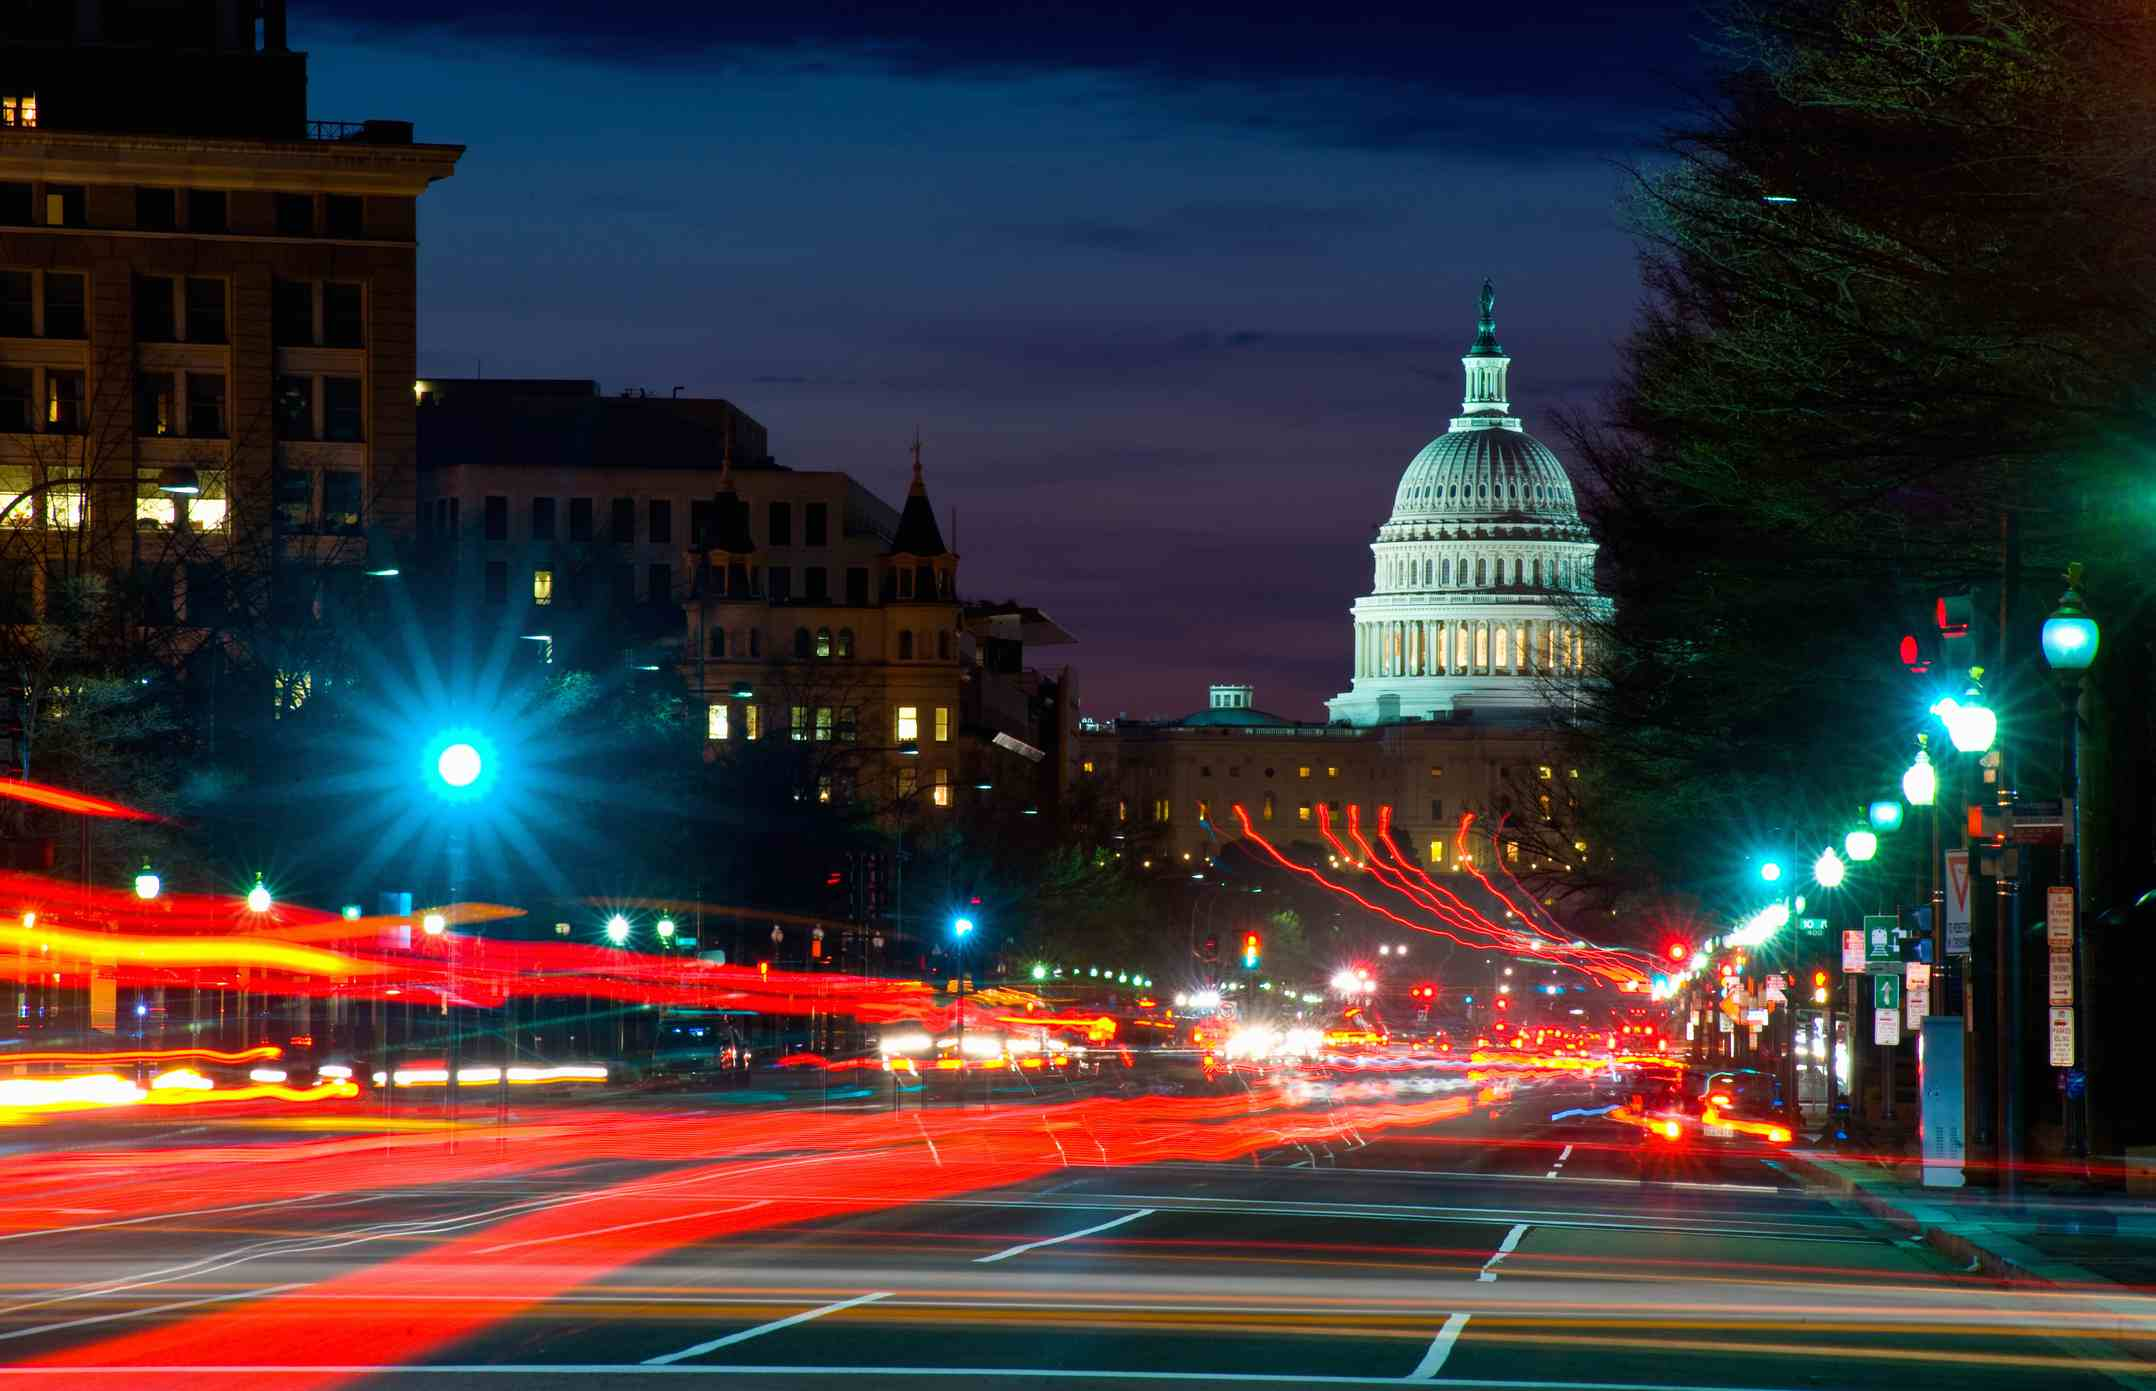 Traffic on the road with State Capitol Building in the background, Washington DC, USA